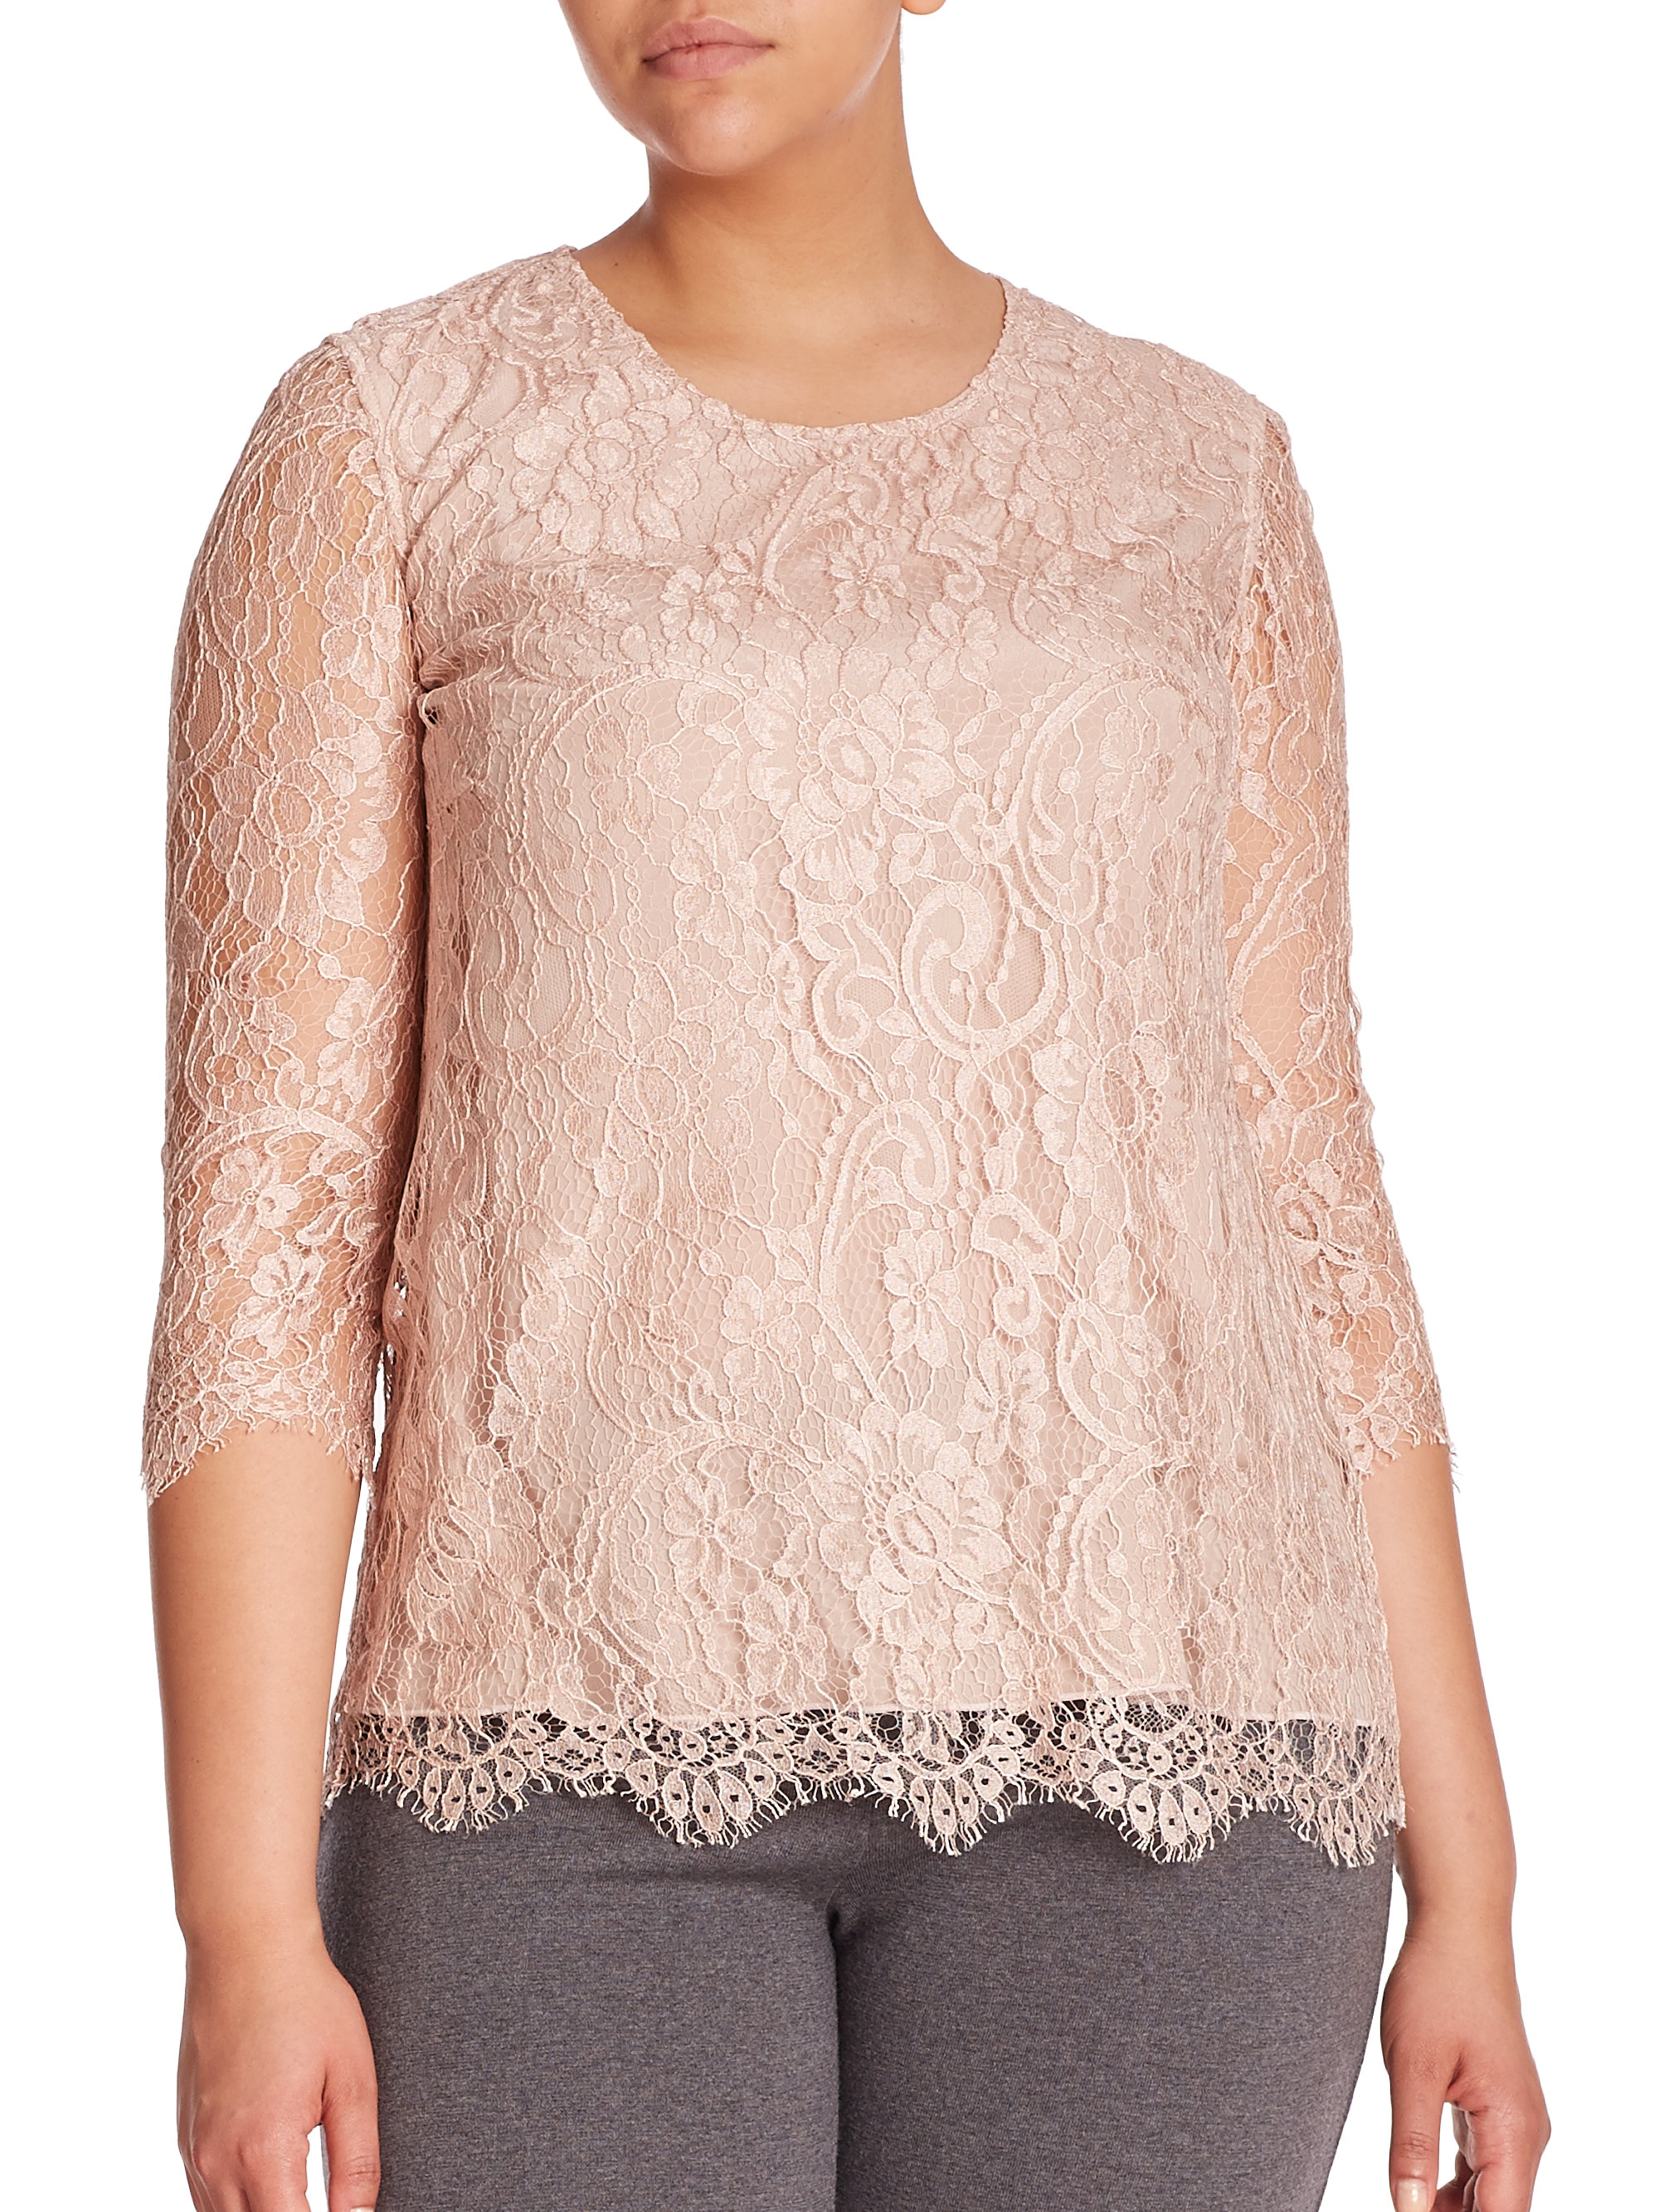 Lyst - Stizzoli Lace Top in Pink